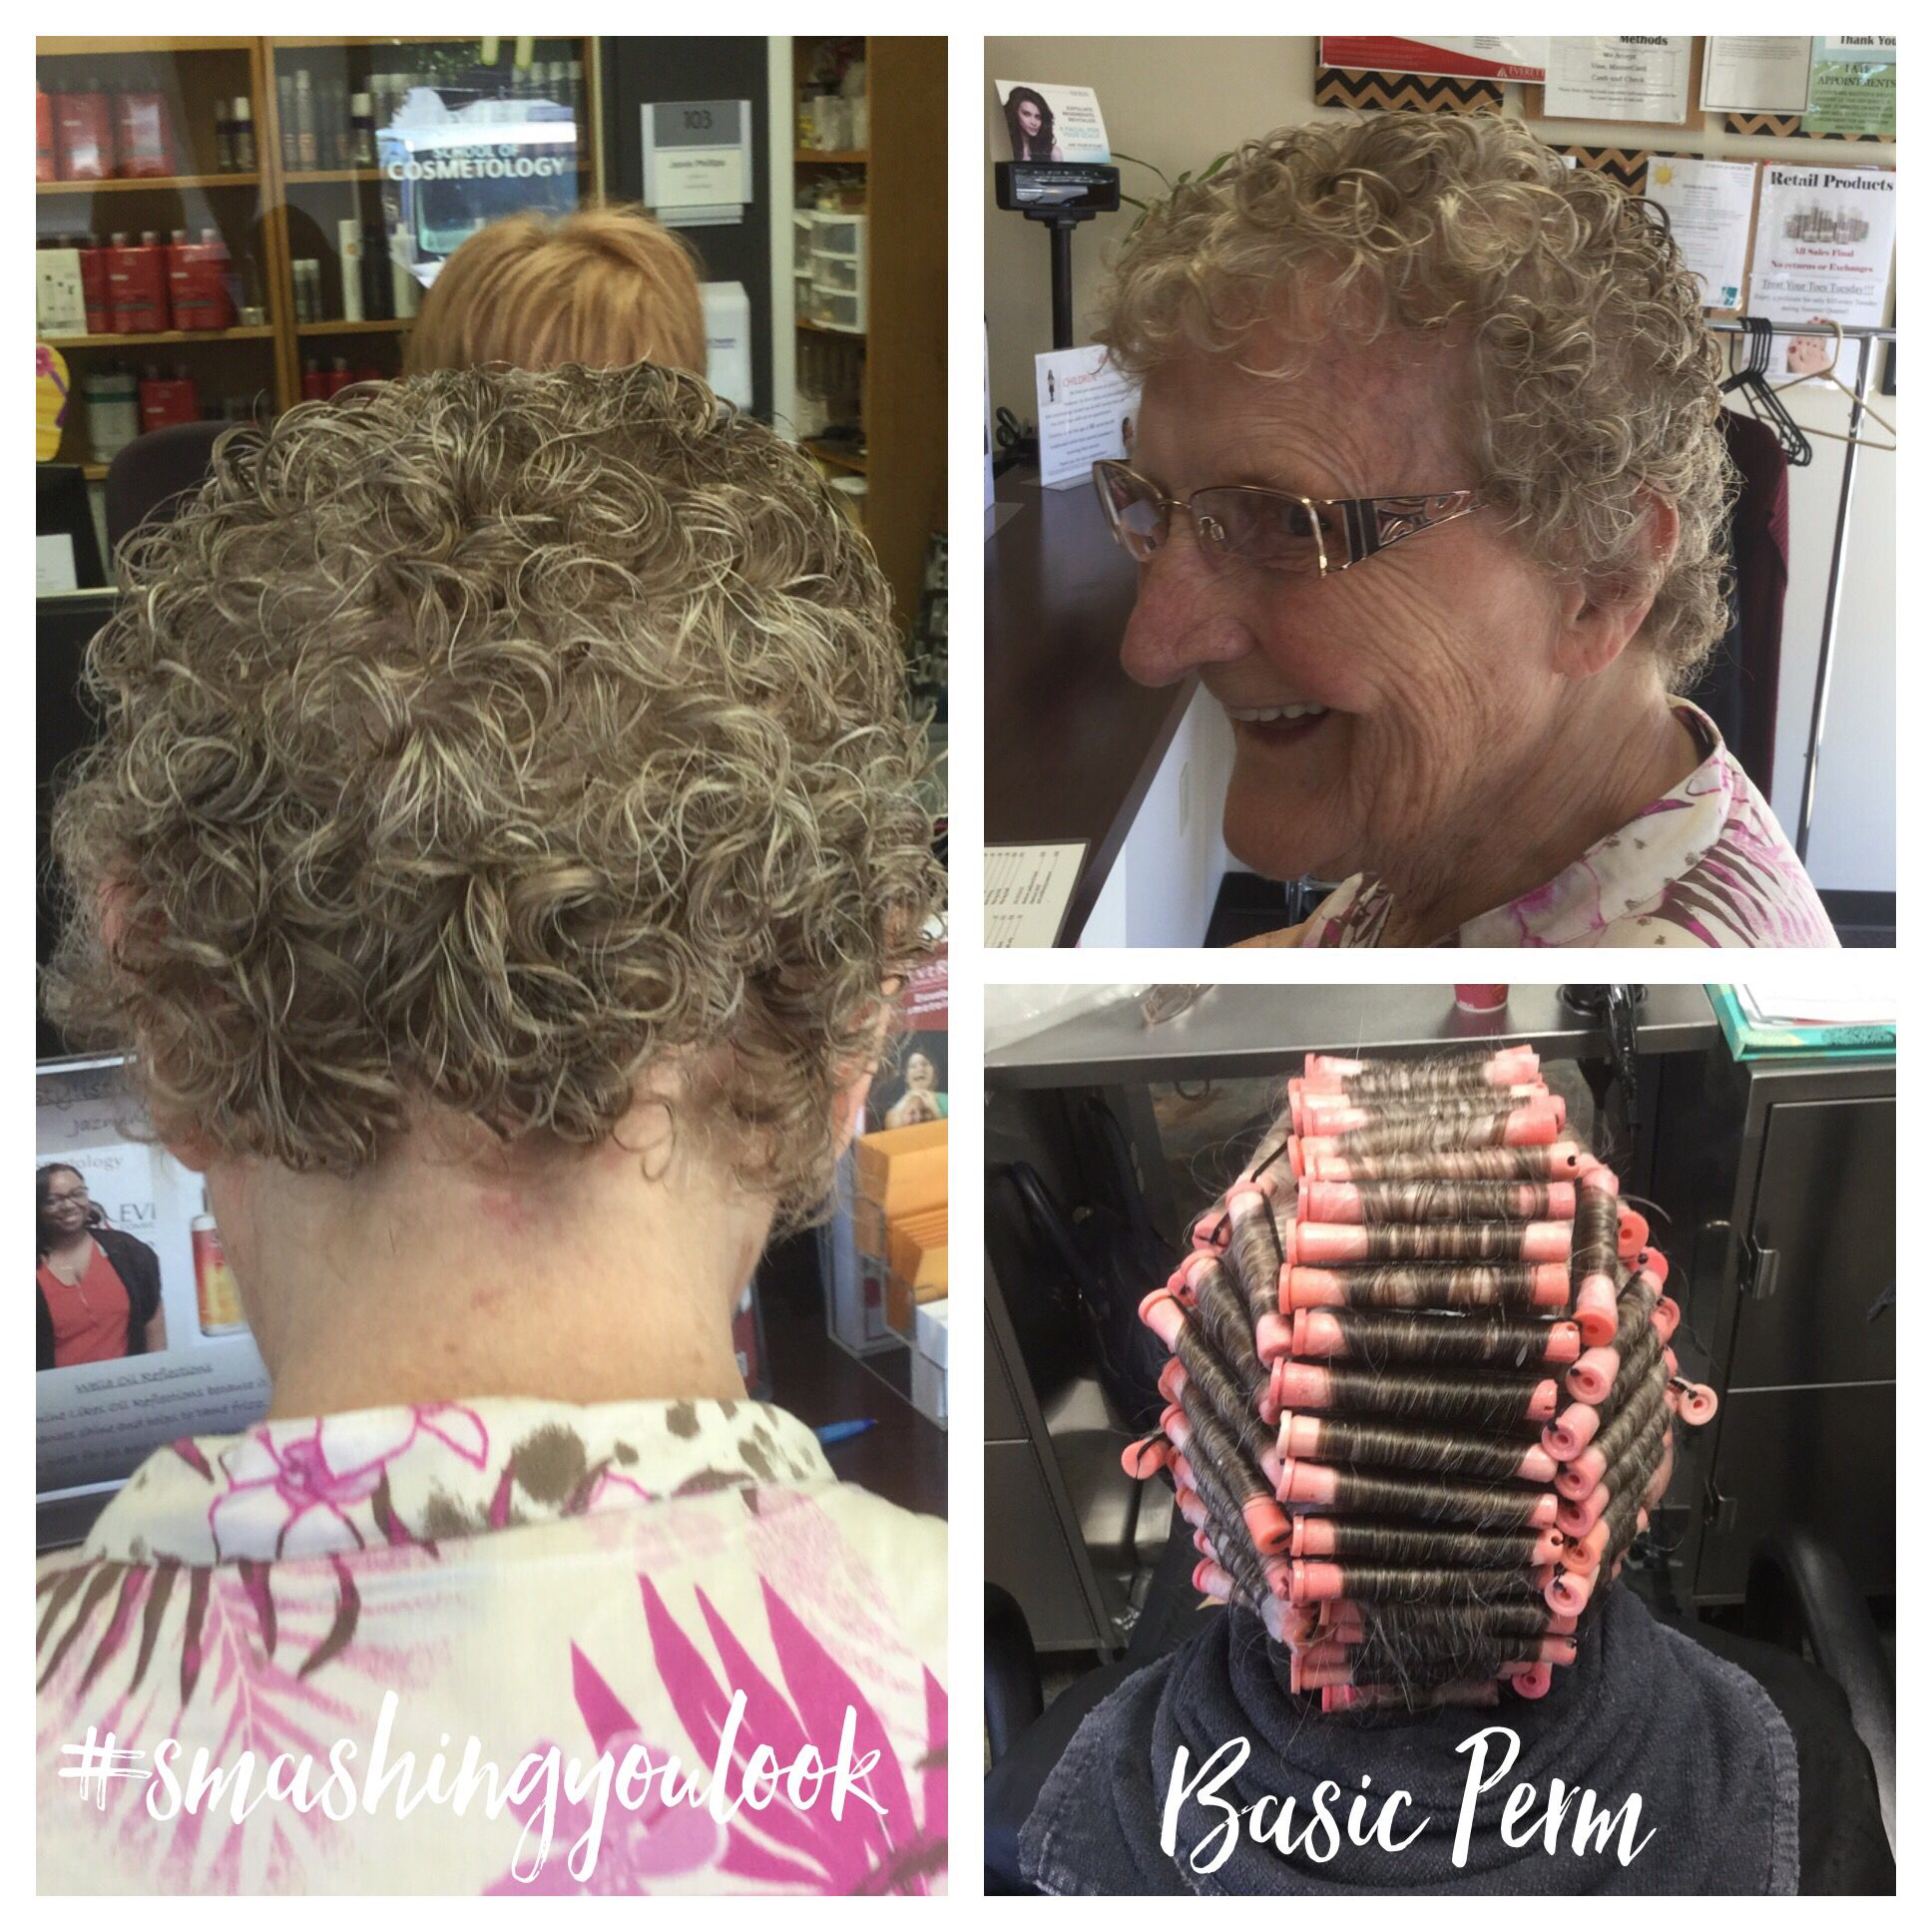 Straight perm solution - Basic Perm Using Pink Rods And Quantum Firm Options Processing Solution Followed With A 90